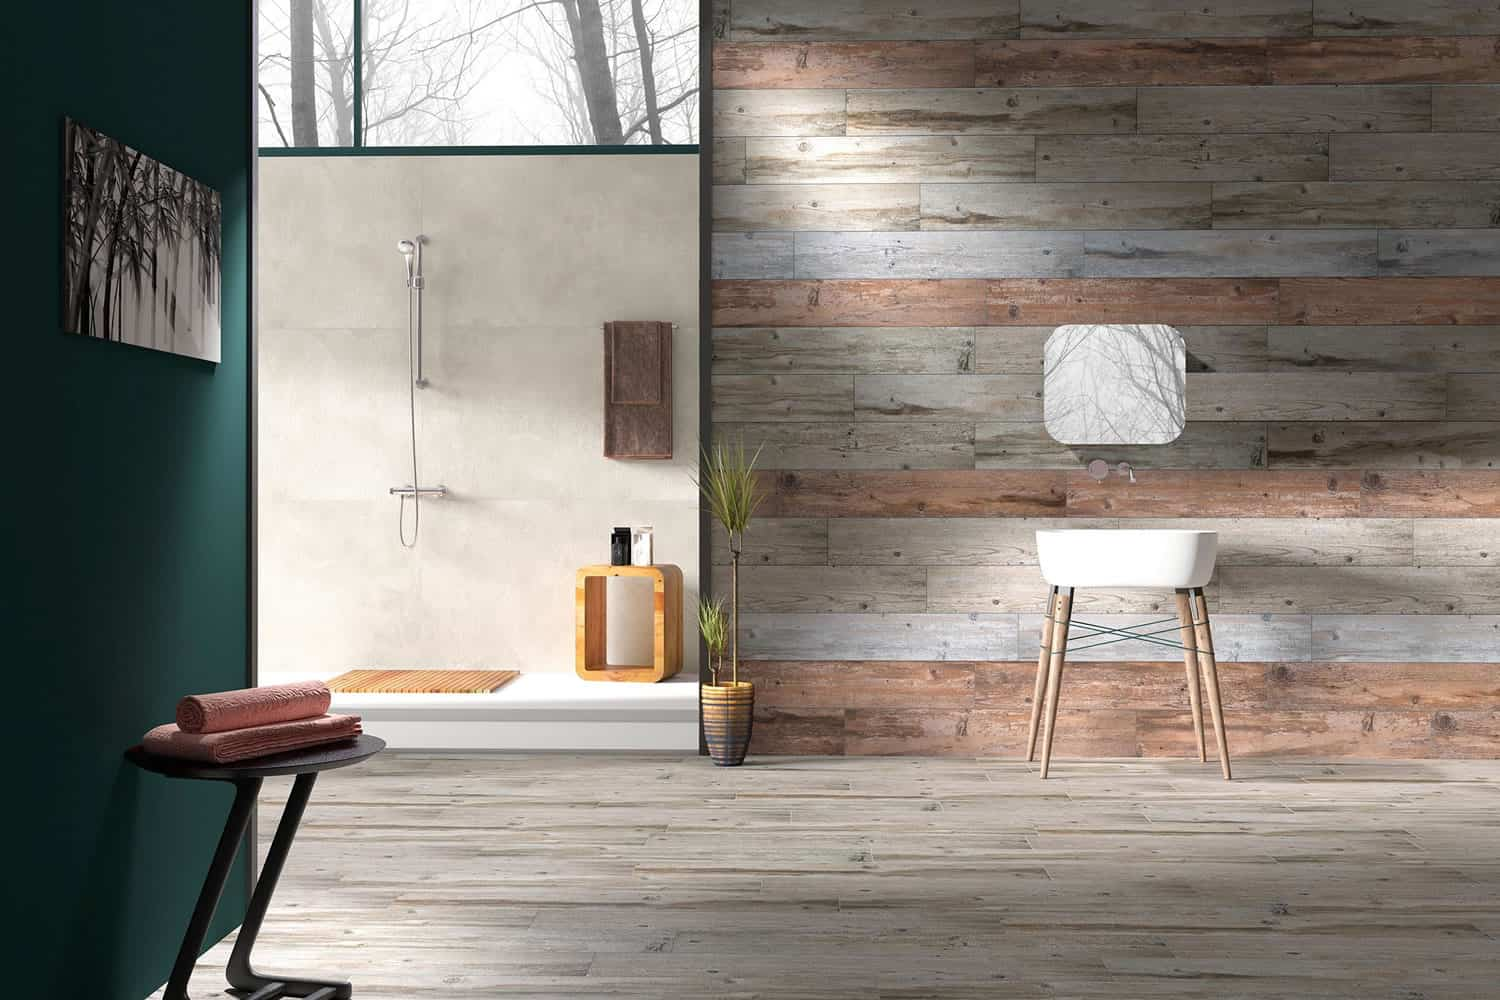 Tiling Bathroom Floor Or Walls First wood effect tiles for floors and walls: 30 nicest porcelain and